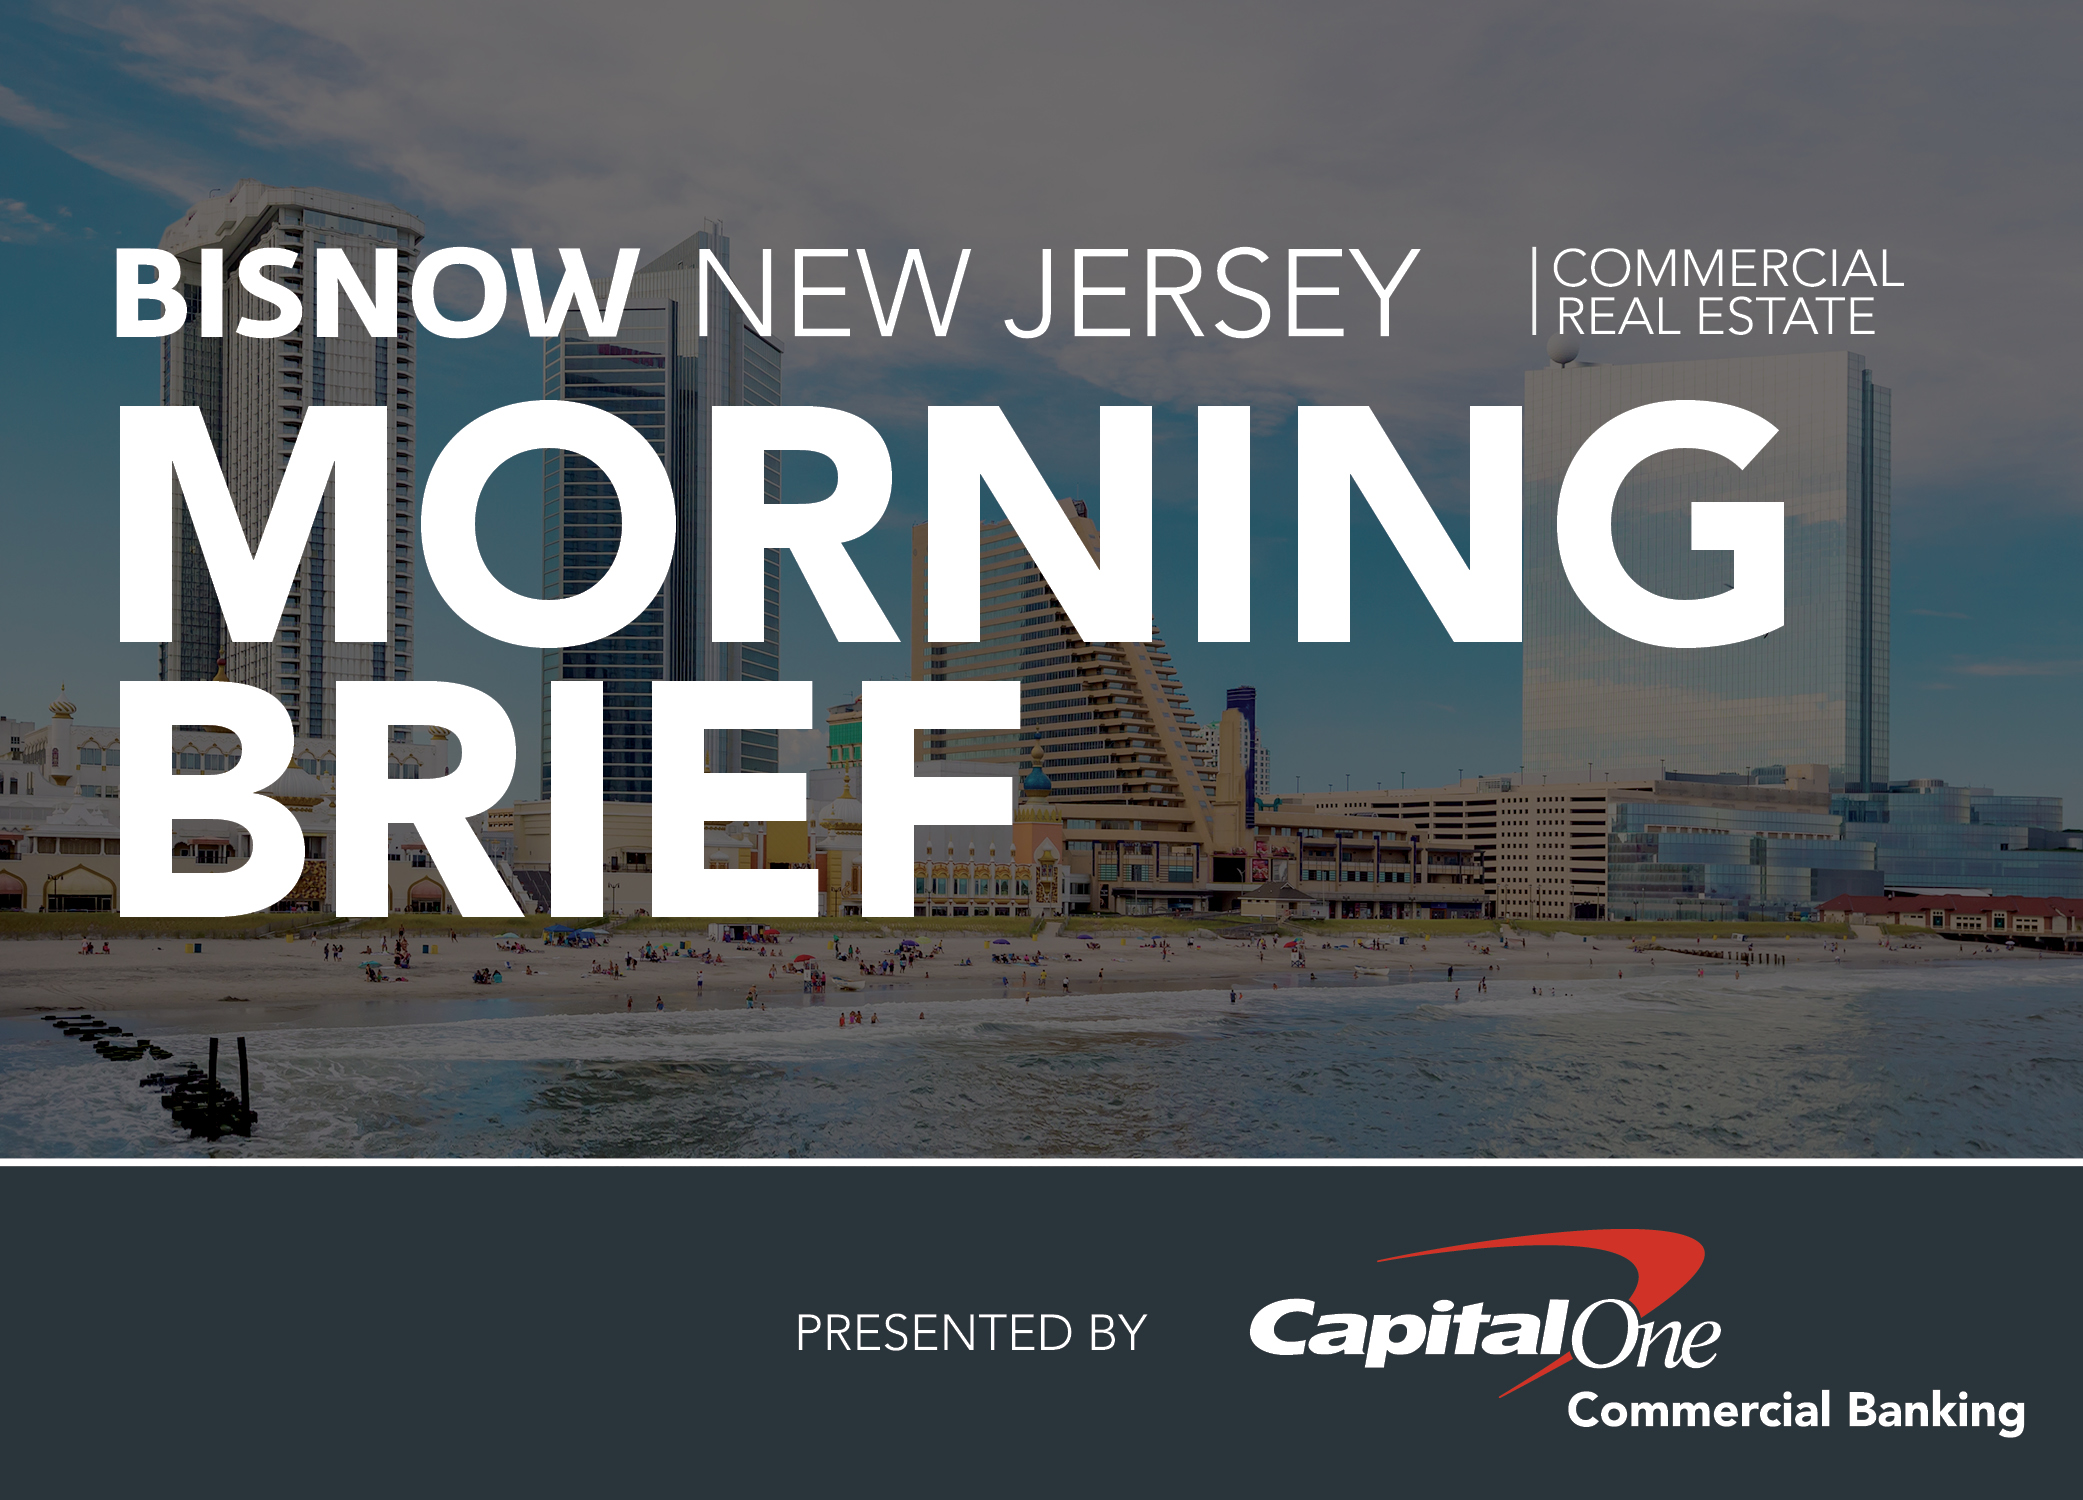 Bisnow Morning Brief New Jersey